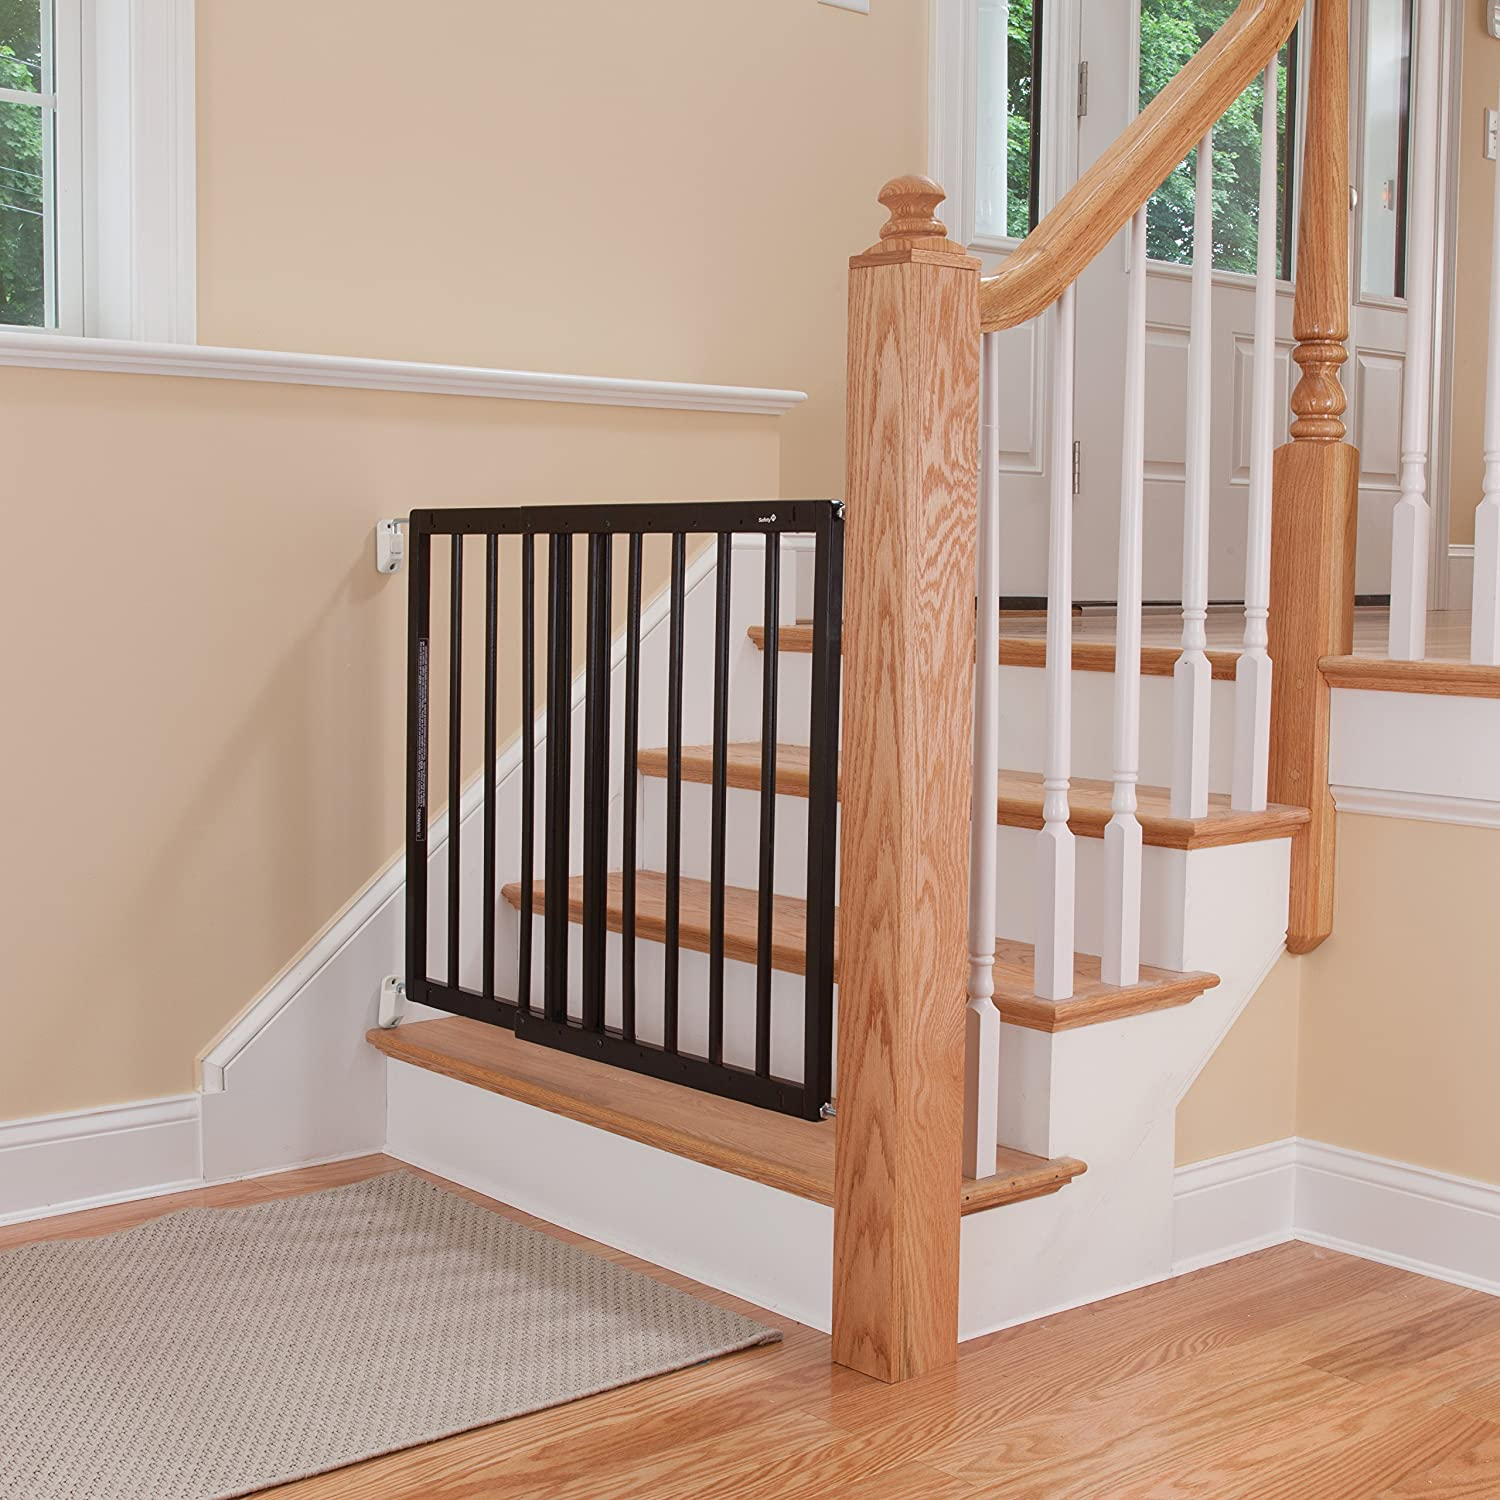 amazoncom  safety st top of stairs frameless décor swing gate  - amazoncom  safety st top of stairs frameless décor swing gate fitsspace between  and   baby